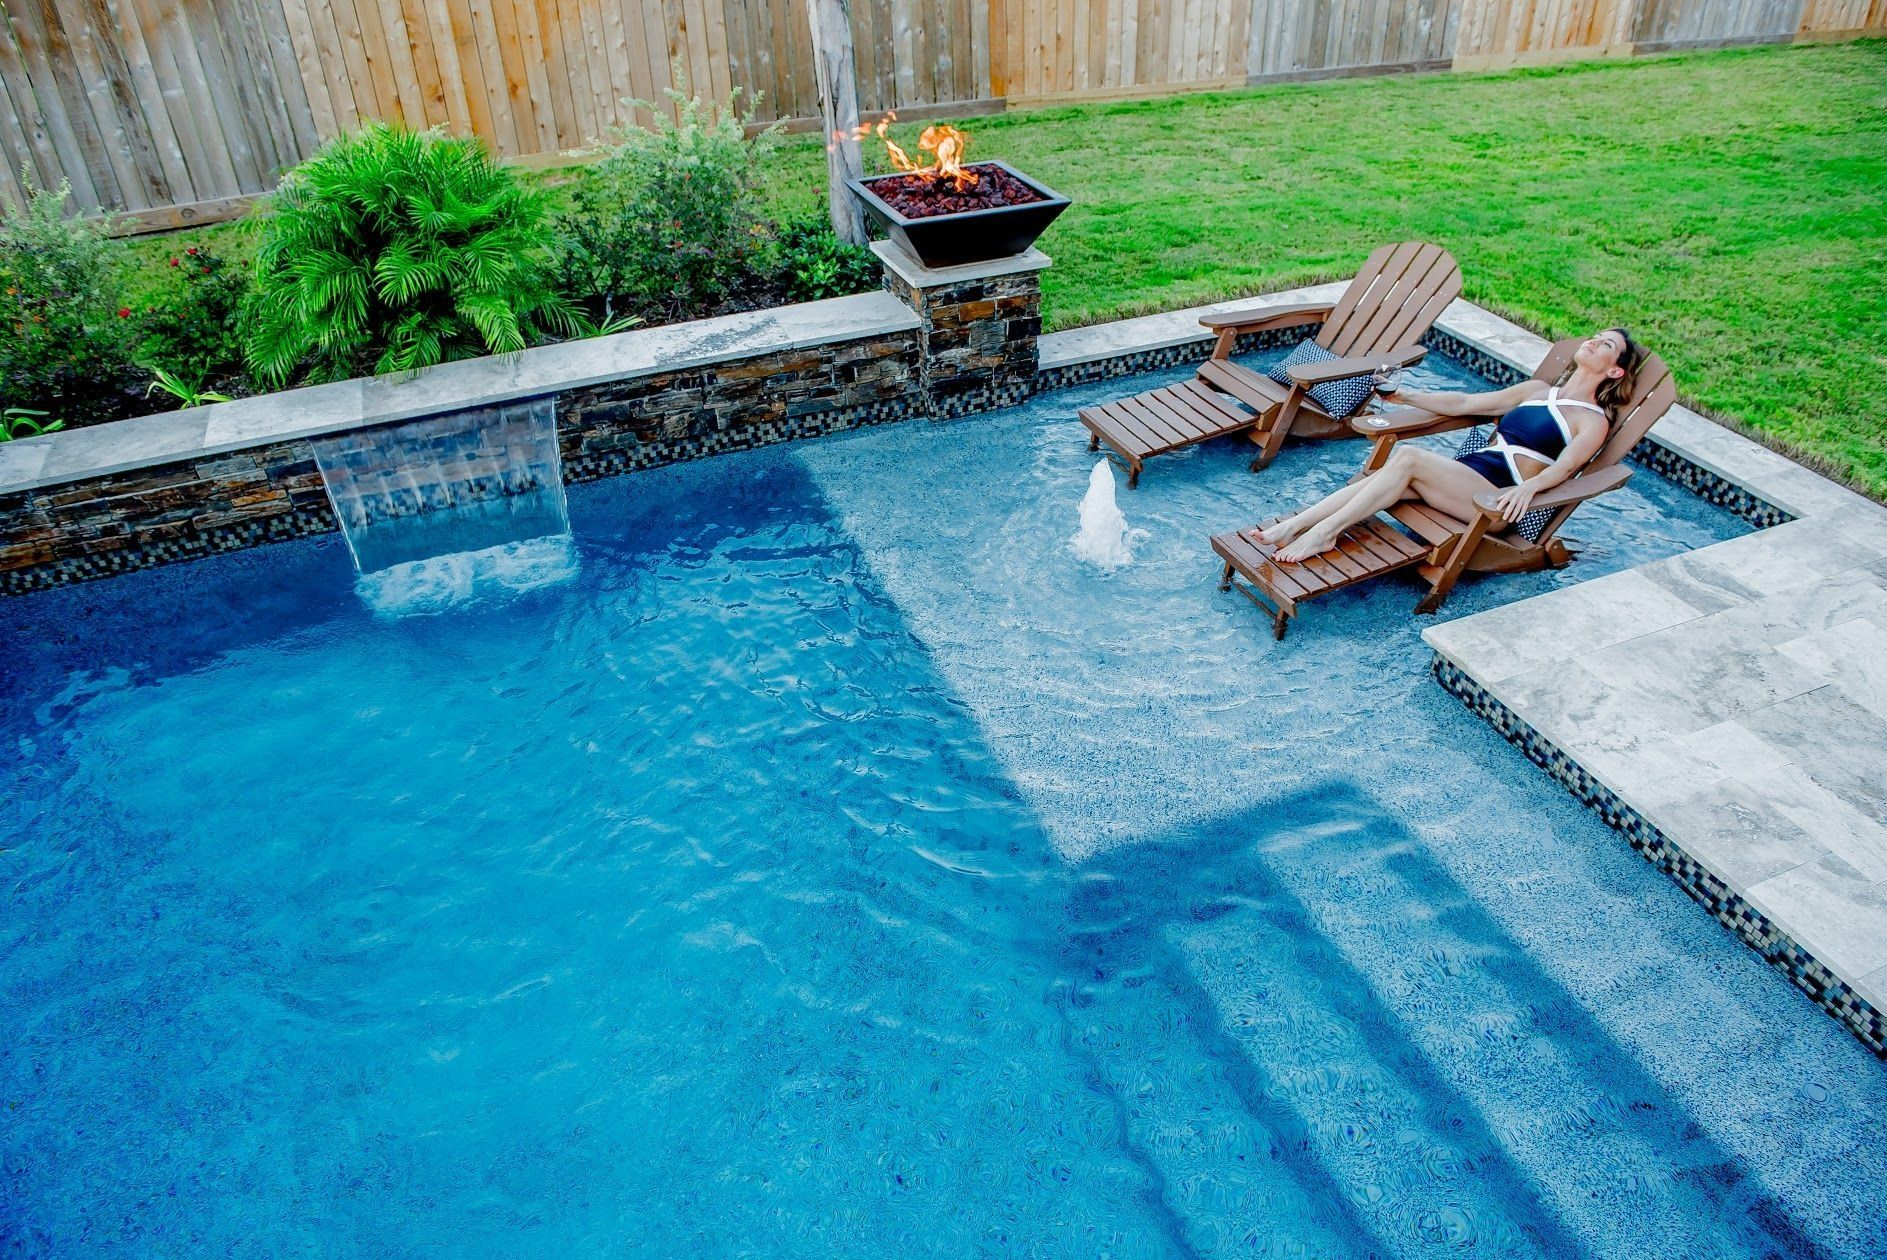 47 Amazing Swimming Pool Design Ideas For Your Yard | Garden